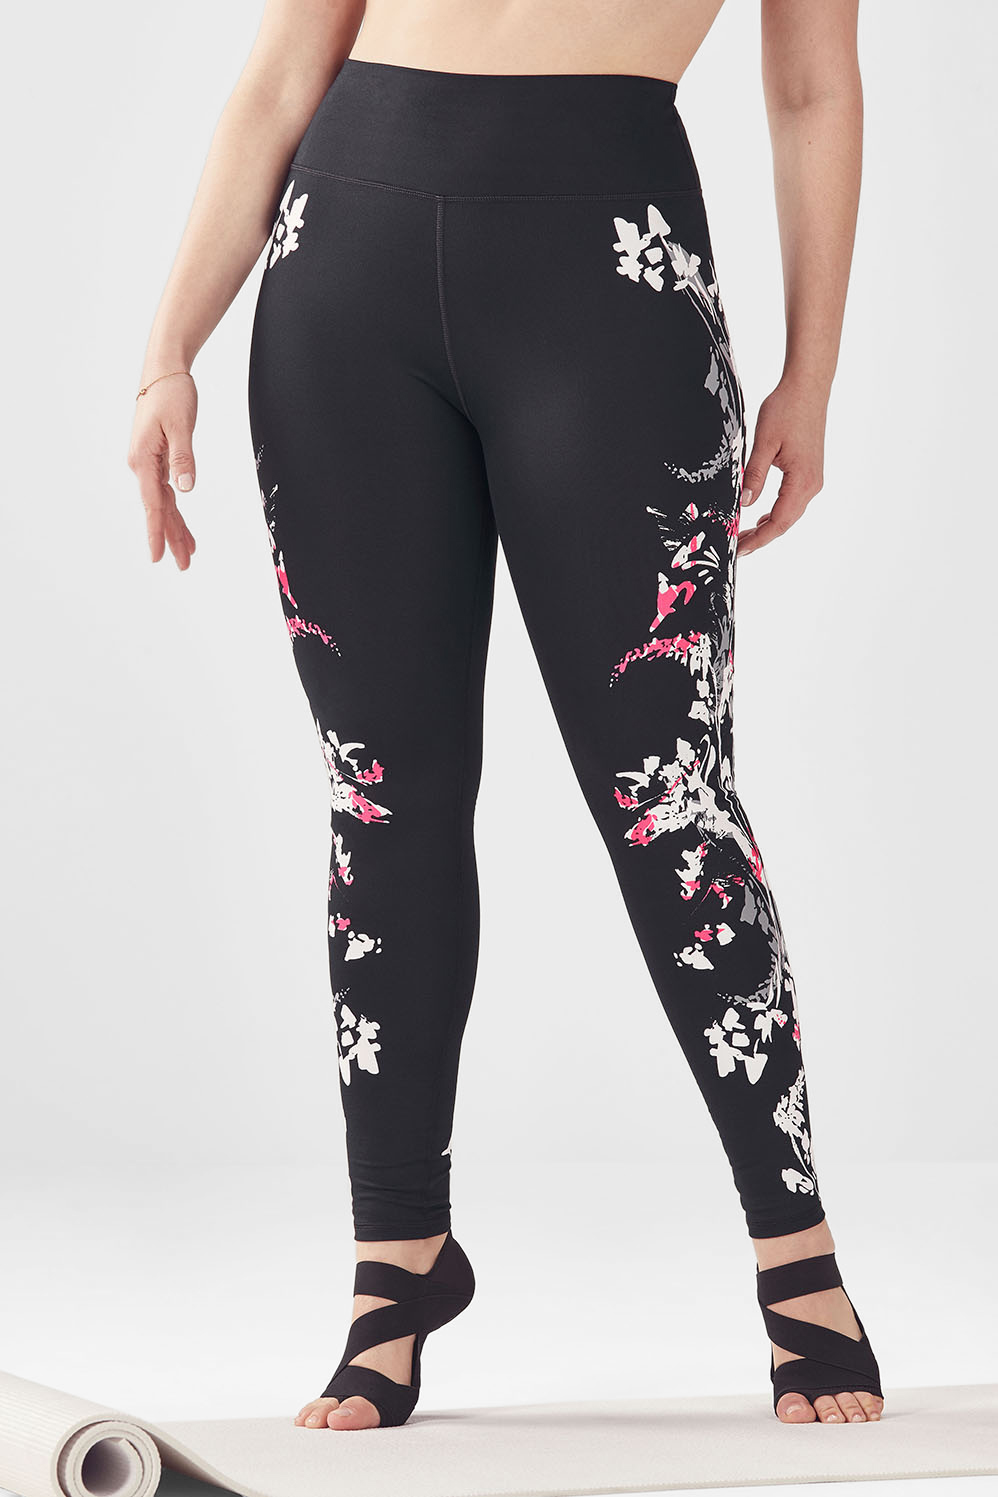 efd4c49f162038 High-Waisted Printed PowerHold® Legging - Fabletics